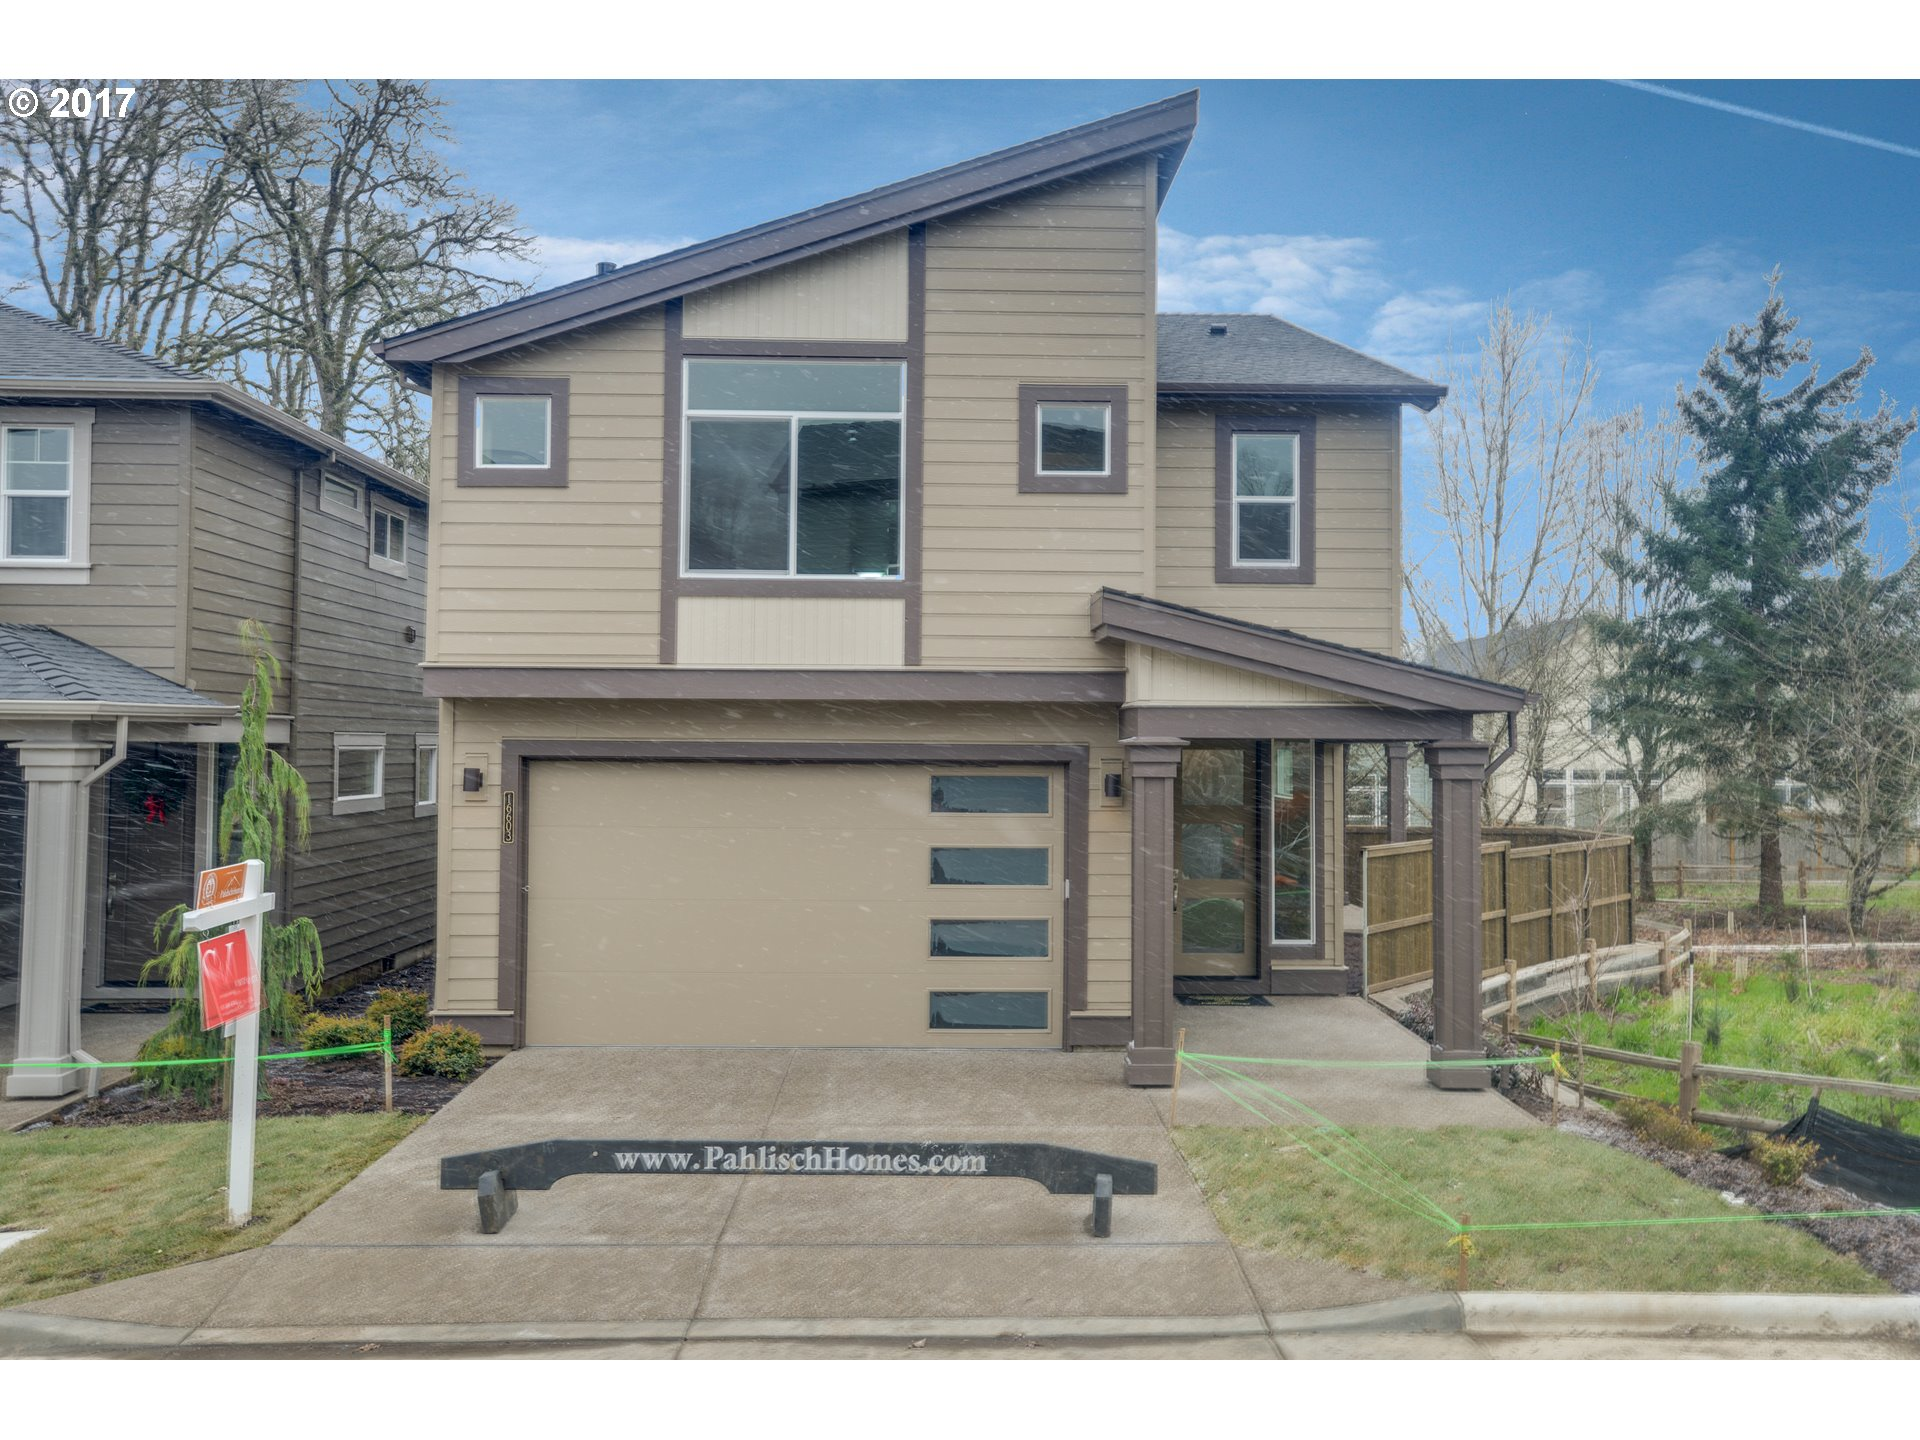 edgewater tigard oregon real estate homes for sale